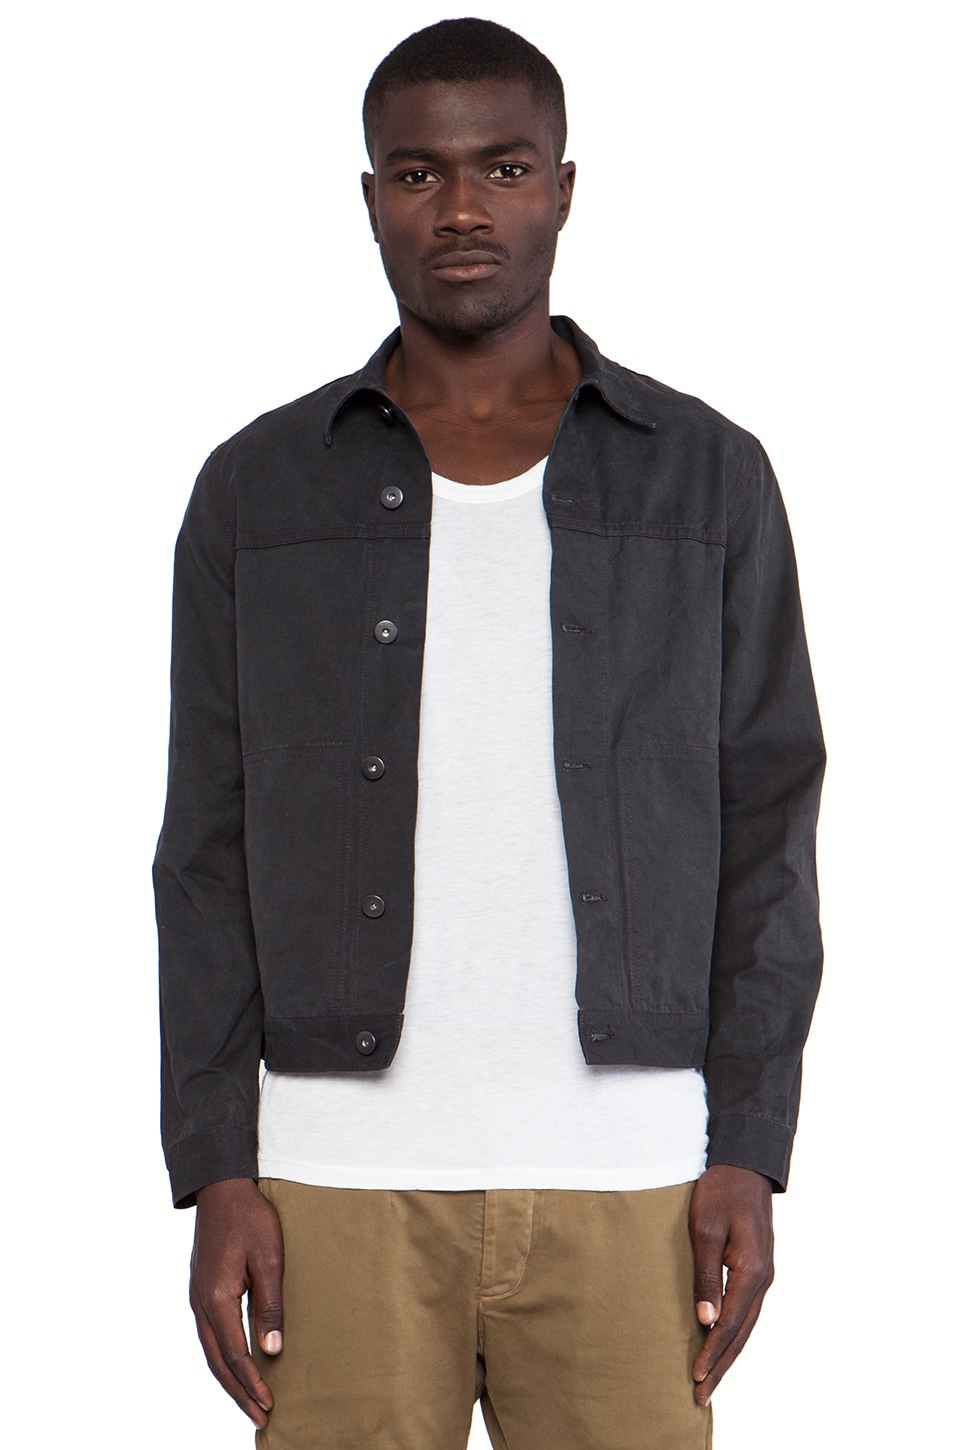 THE/END Chino Rider Jacket in Vintage Black